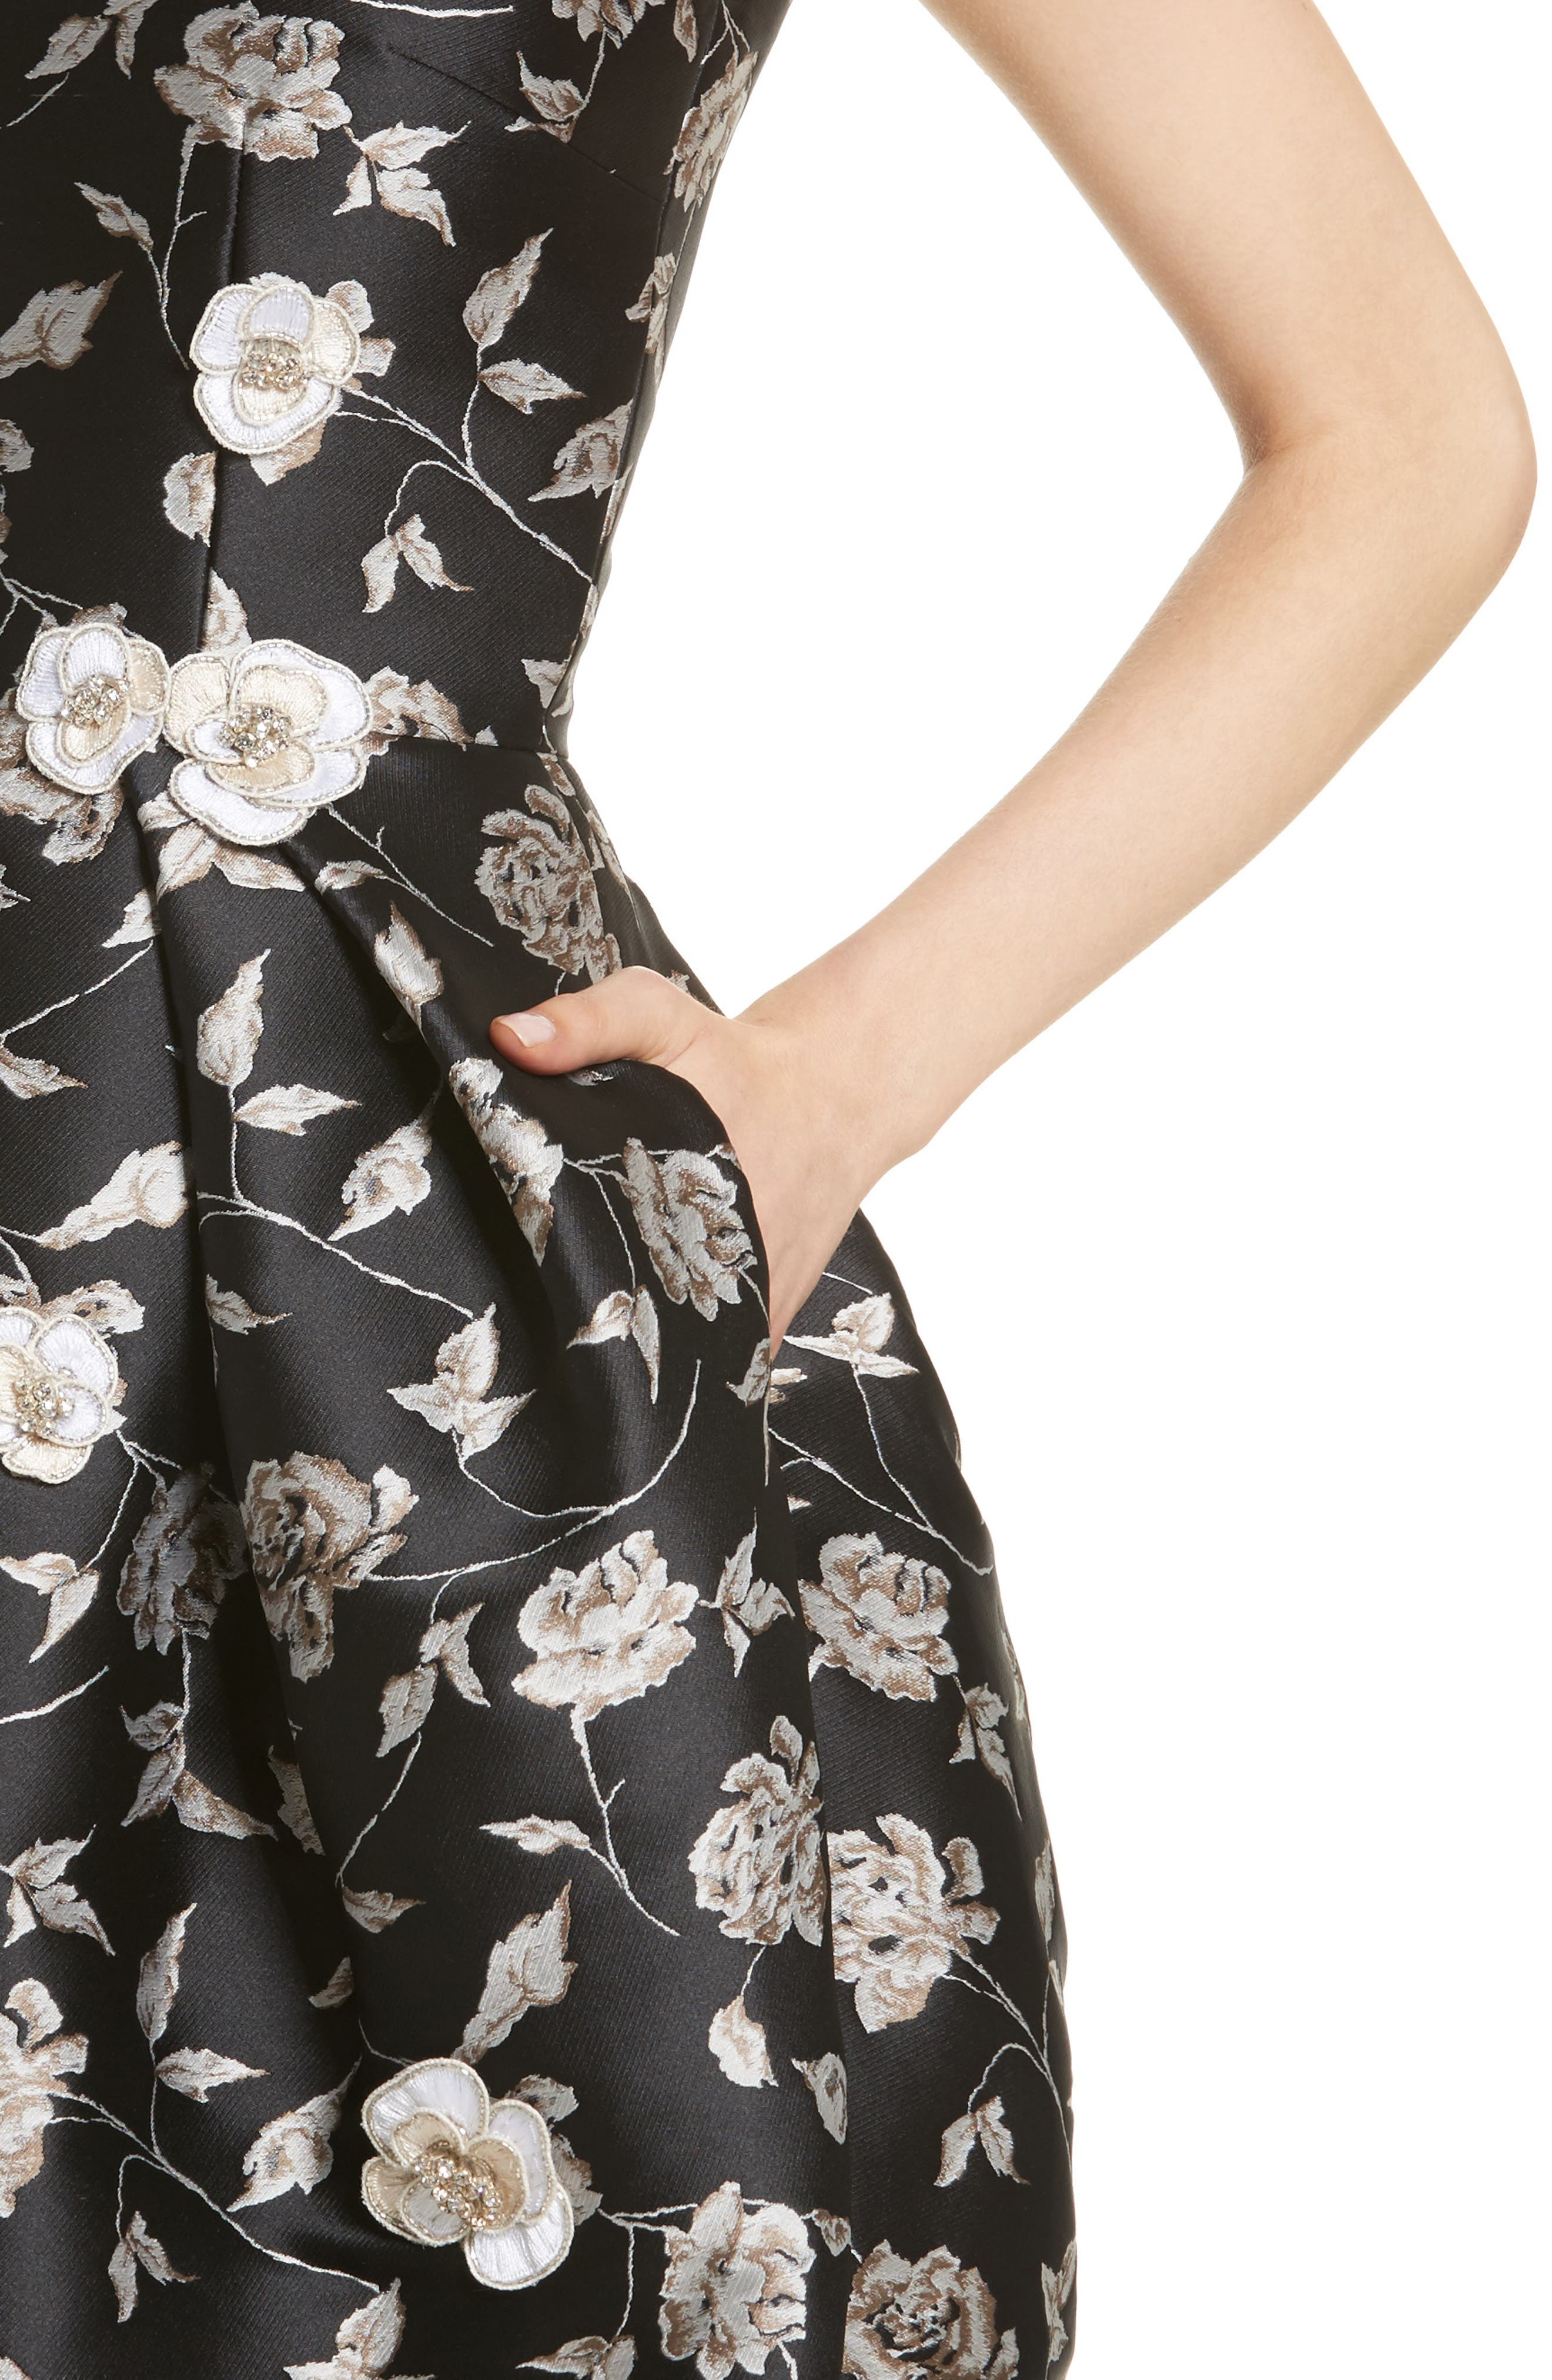 Carmen Marc Valvo Embellished Appliqué Floral Jacquard Cocktail Dress,                             Alternate thumbnail 4, color,                             Black